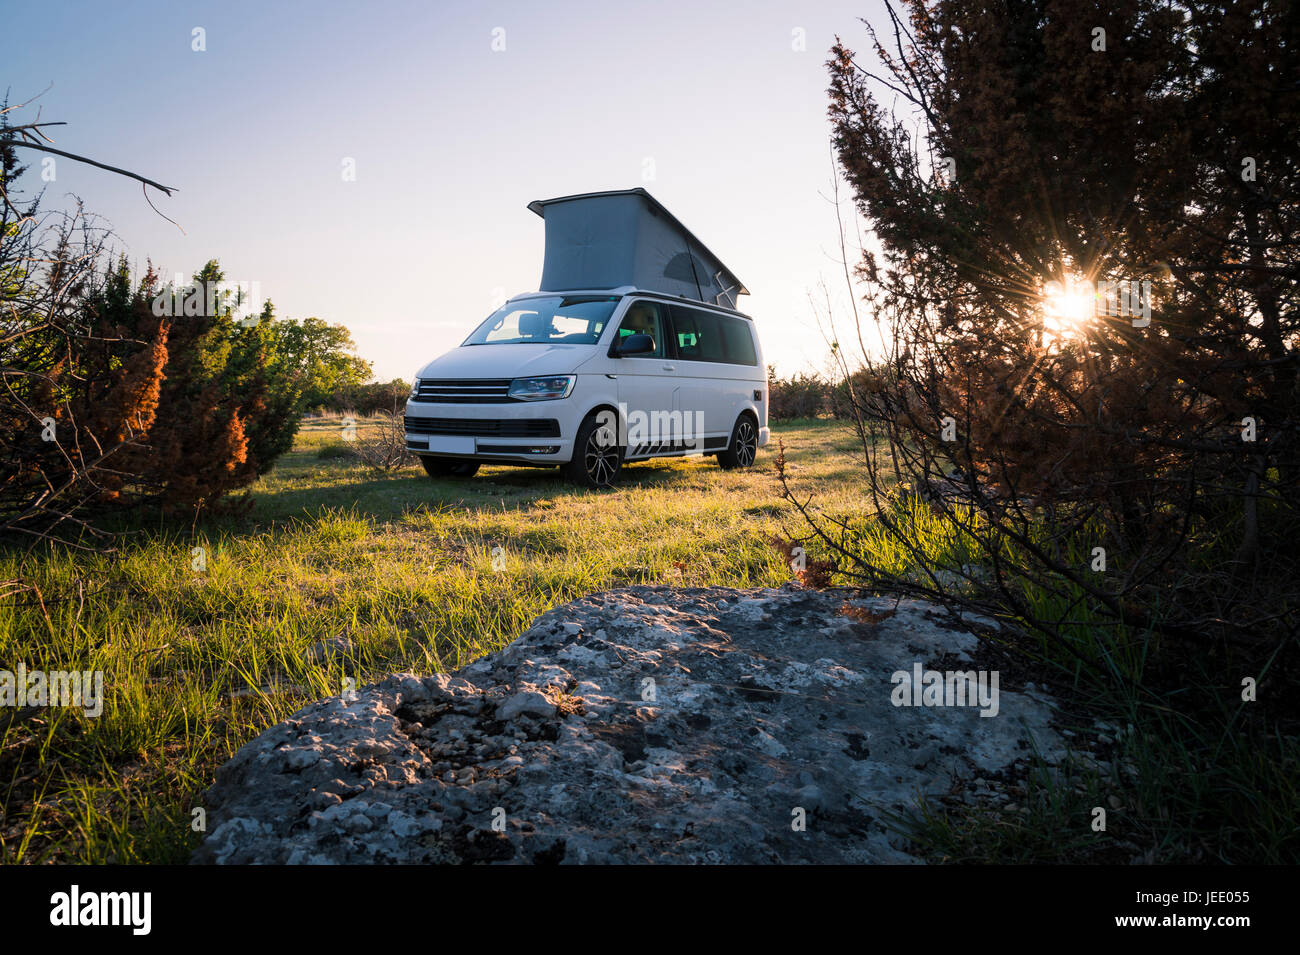 Camper with roof tent in the nature - Stock Image